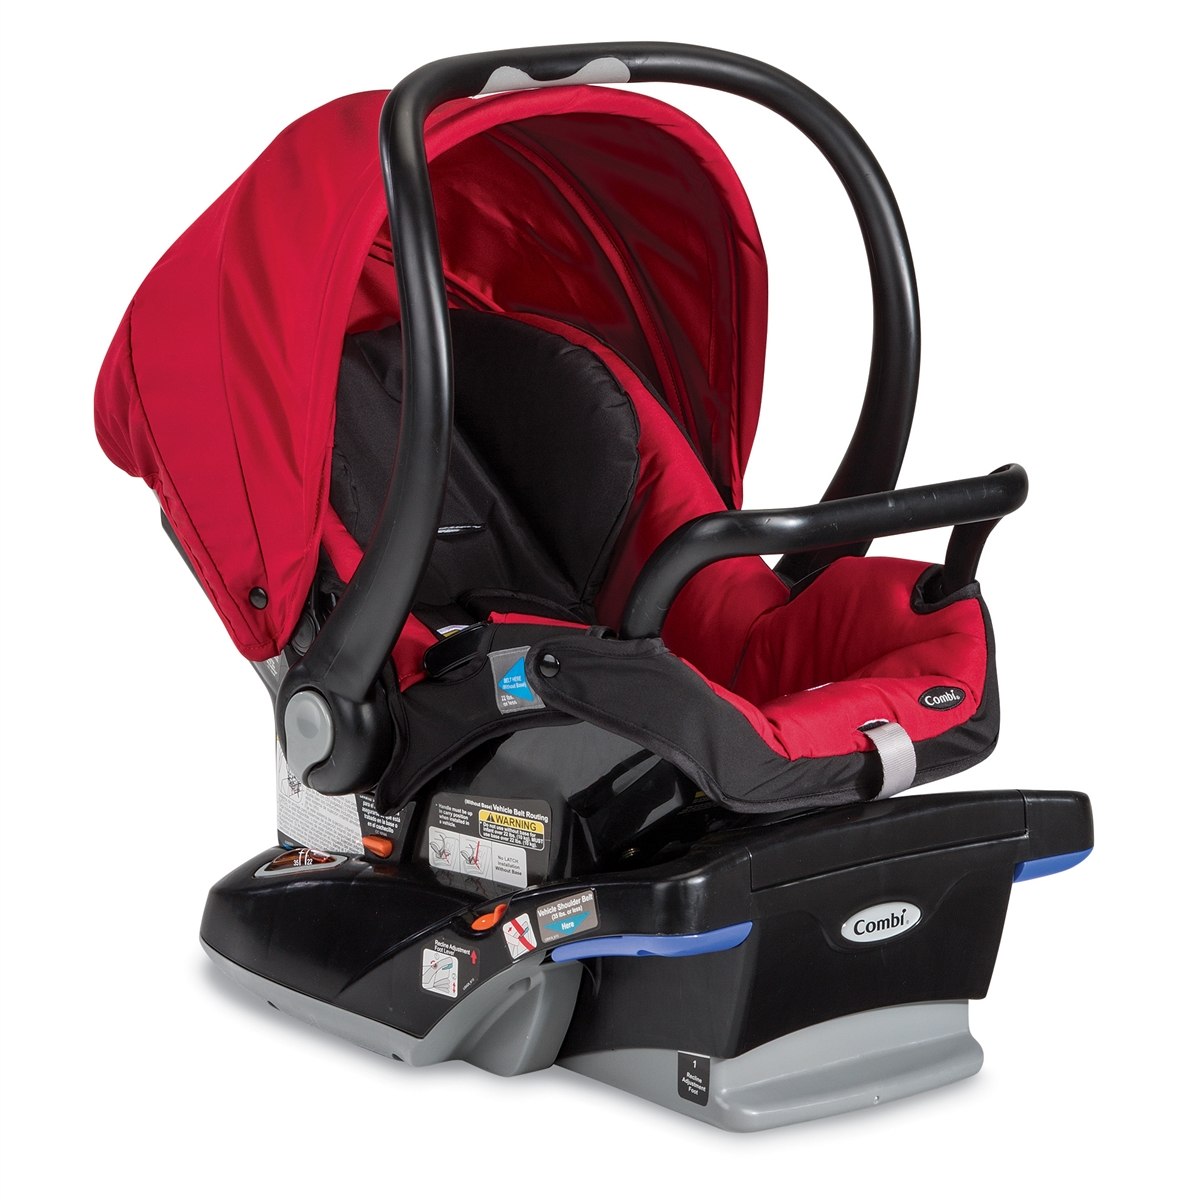 Marvelous Shuttle Infant Car Seat